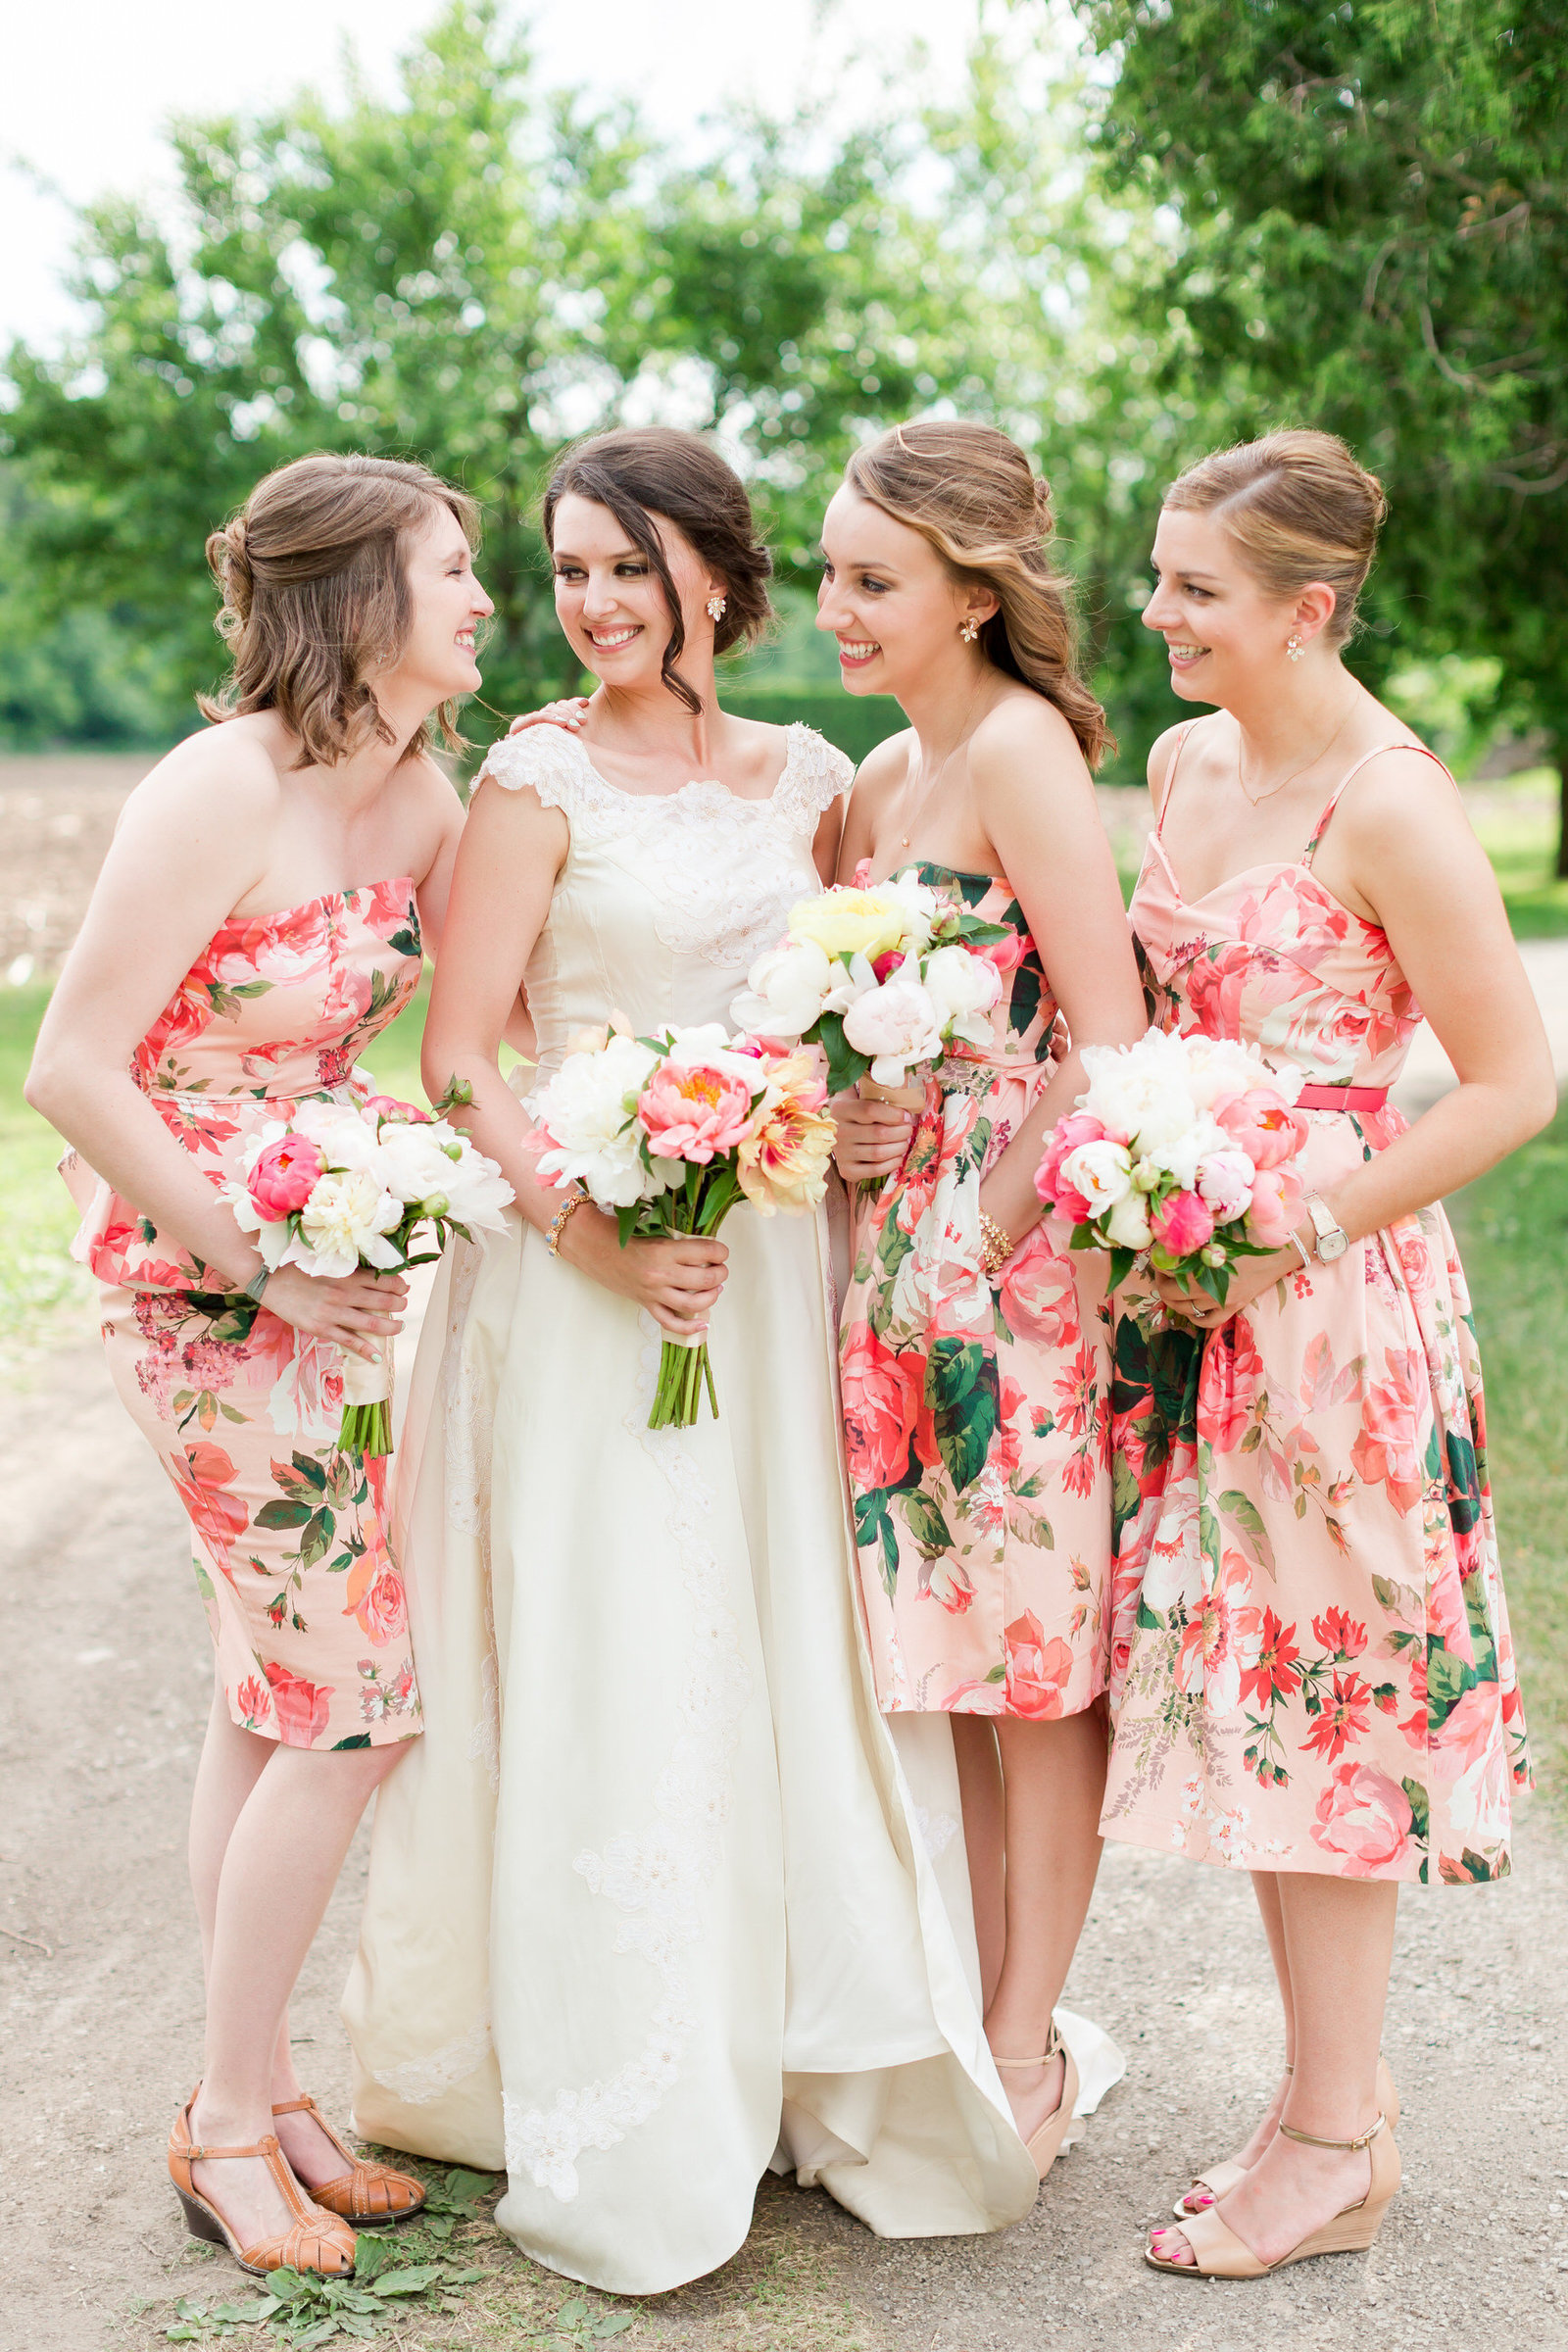 Maison Meredith Photography Wisconsin Wedding Photographer 025